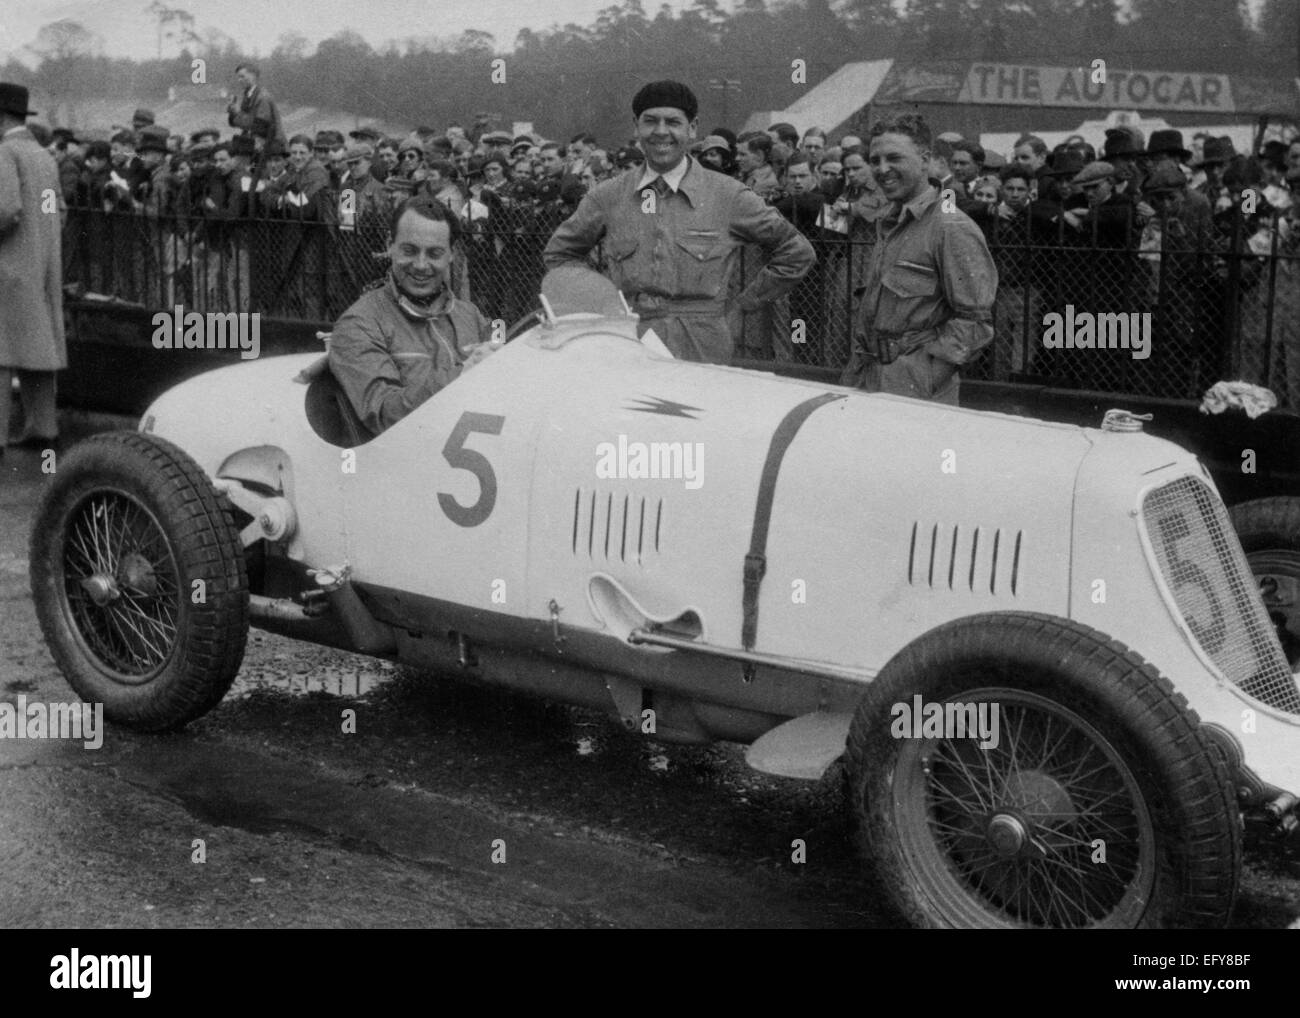 Maserati -Straight 8cm 2.9 1934 at Brooklands International Trophy, which he won. Whitney Straight driving, Ramponi - Stock Image